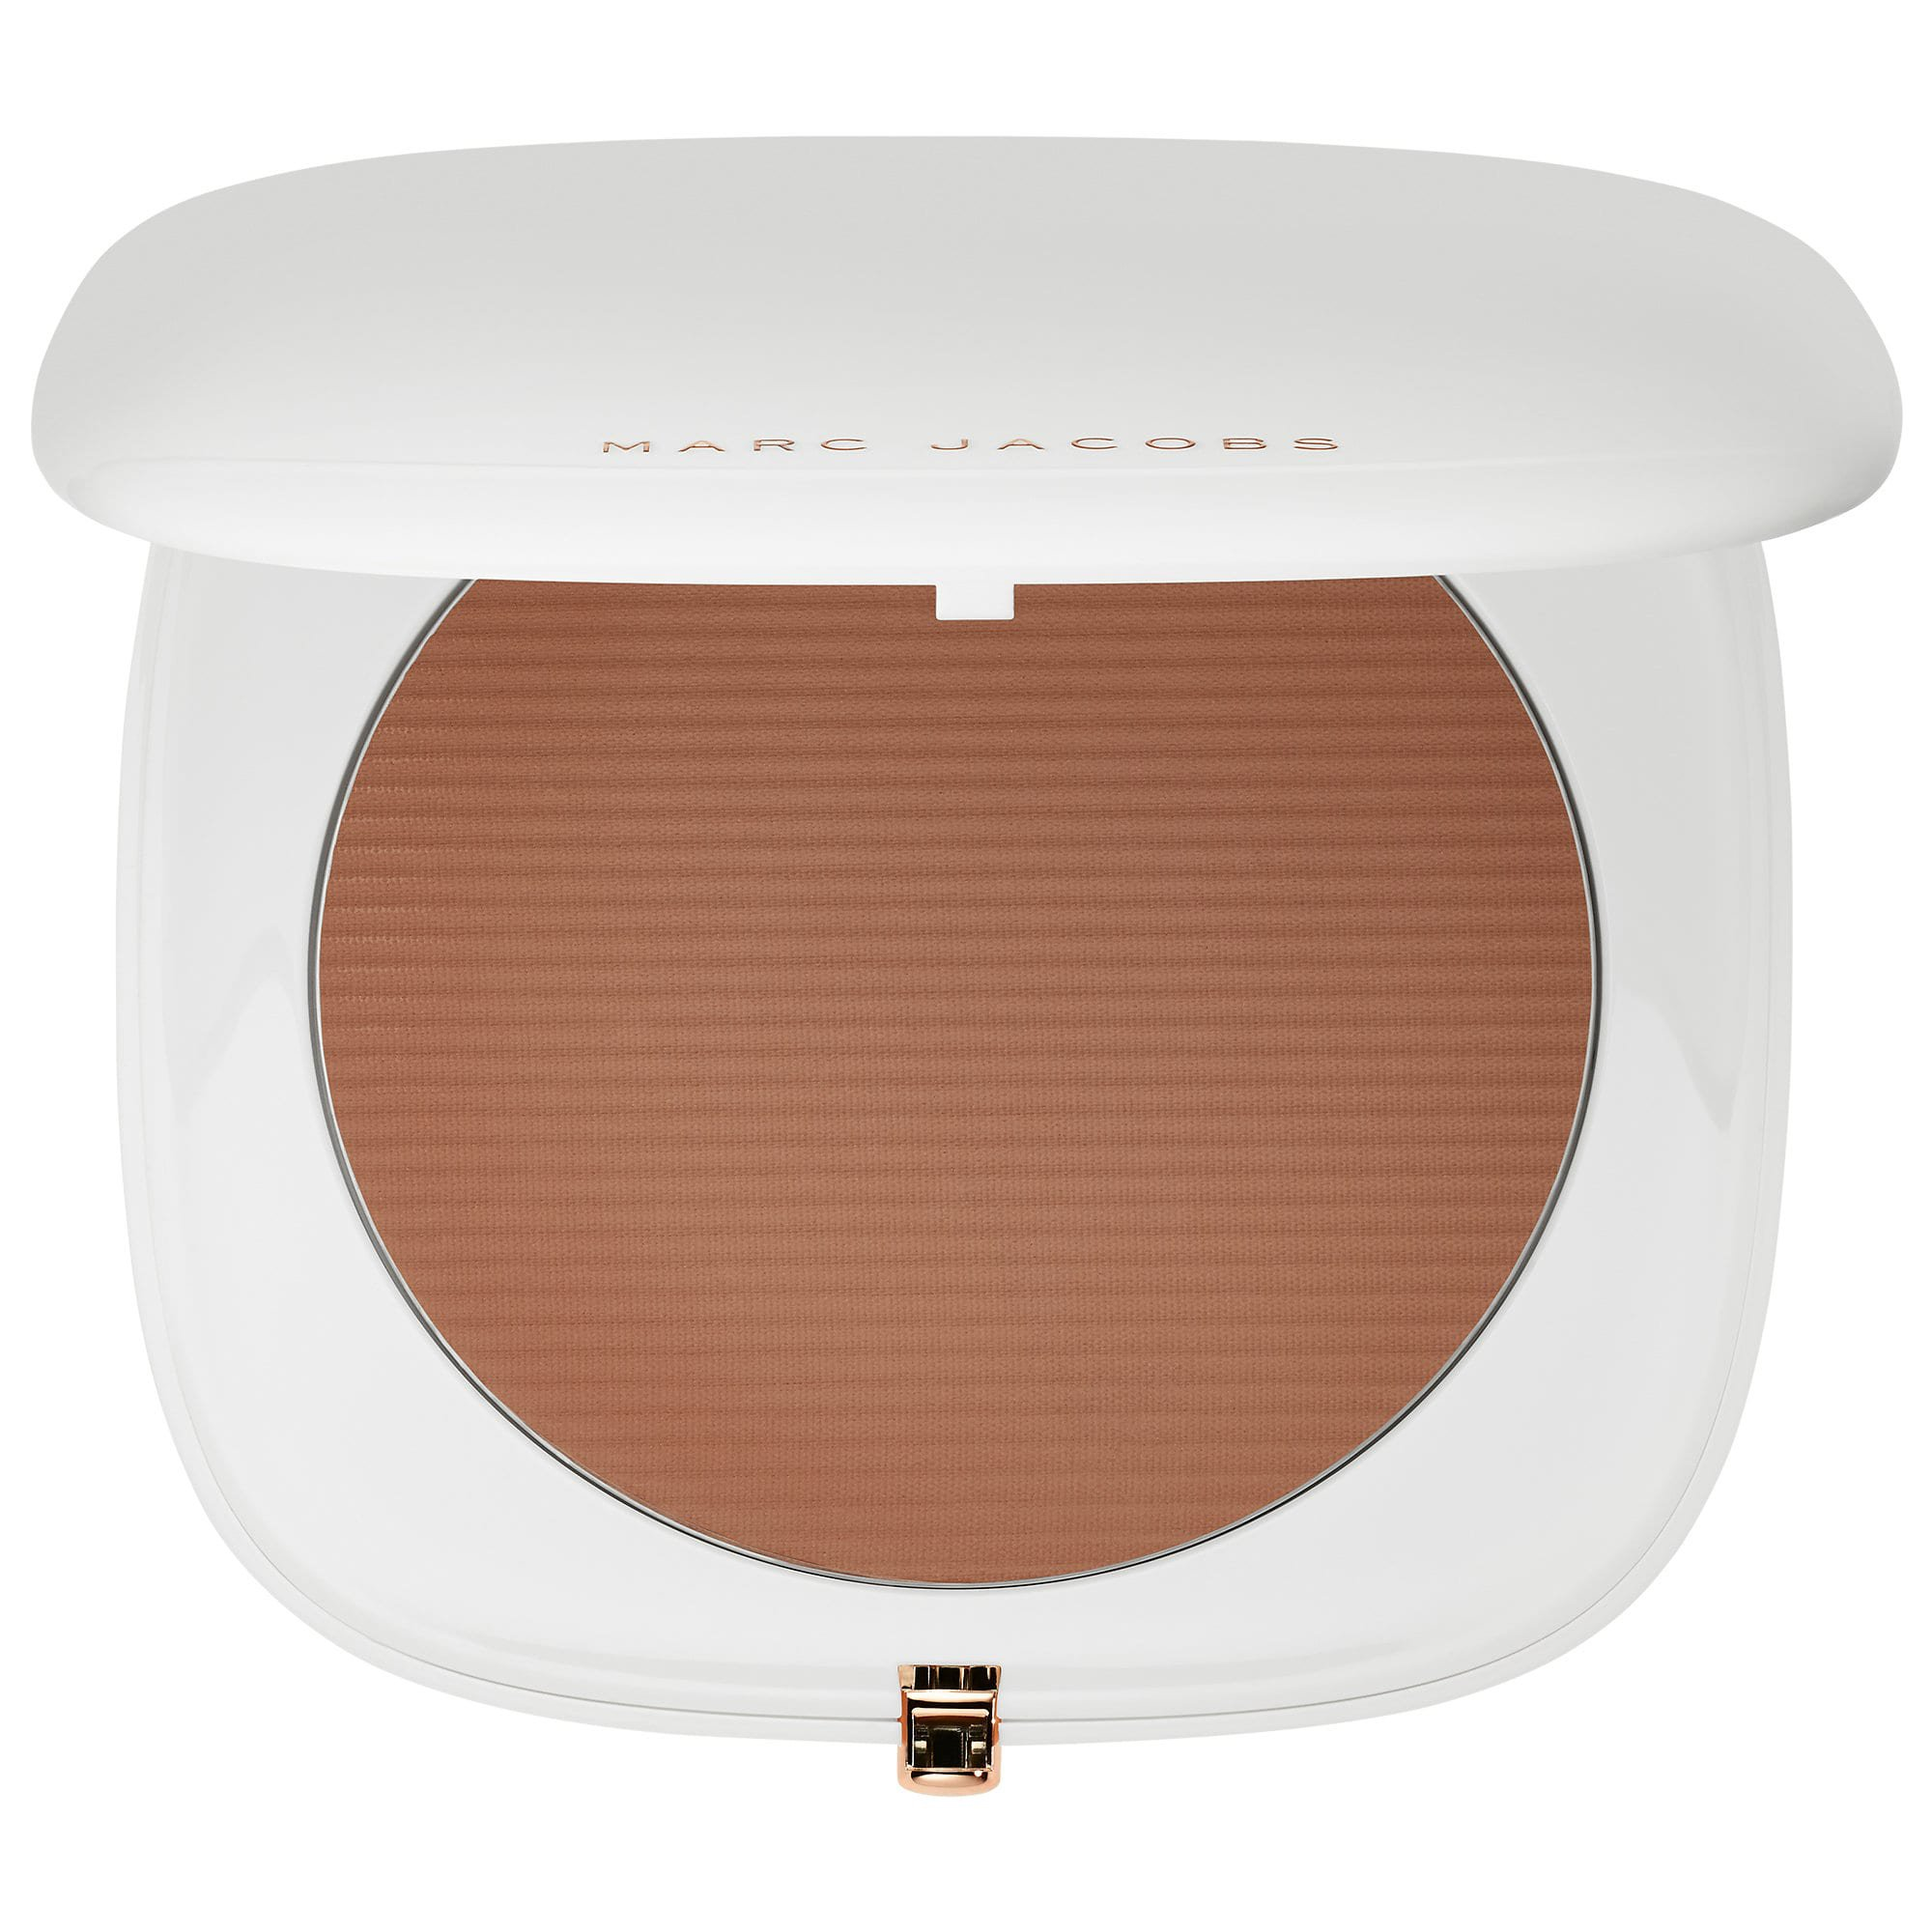 O!Mega Bronzer Coconut Perfect Tan - Marc Jacobs Beauty | Sephora